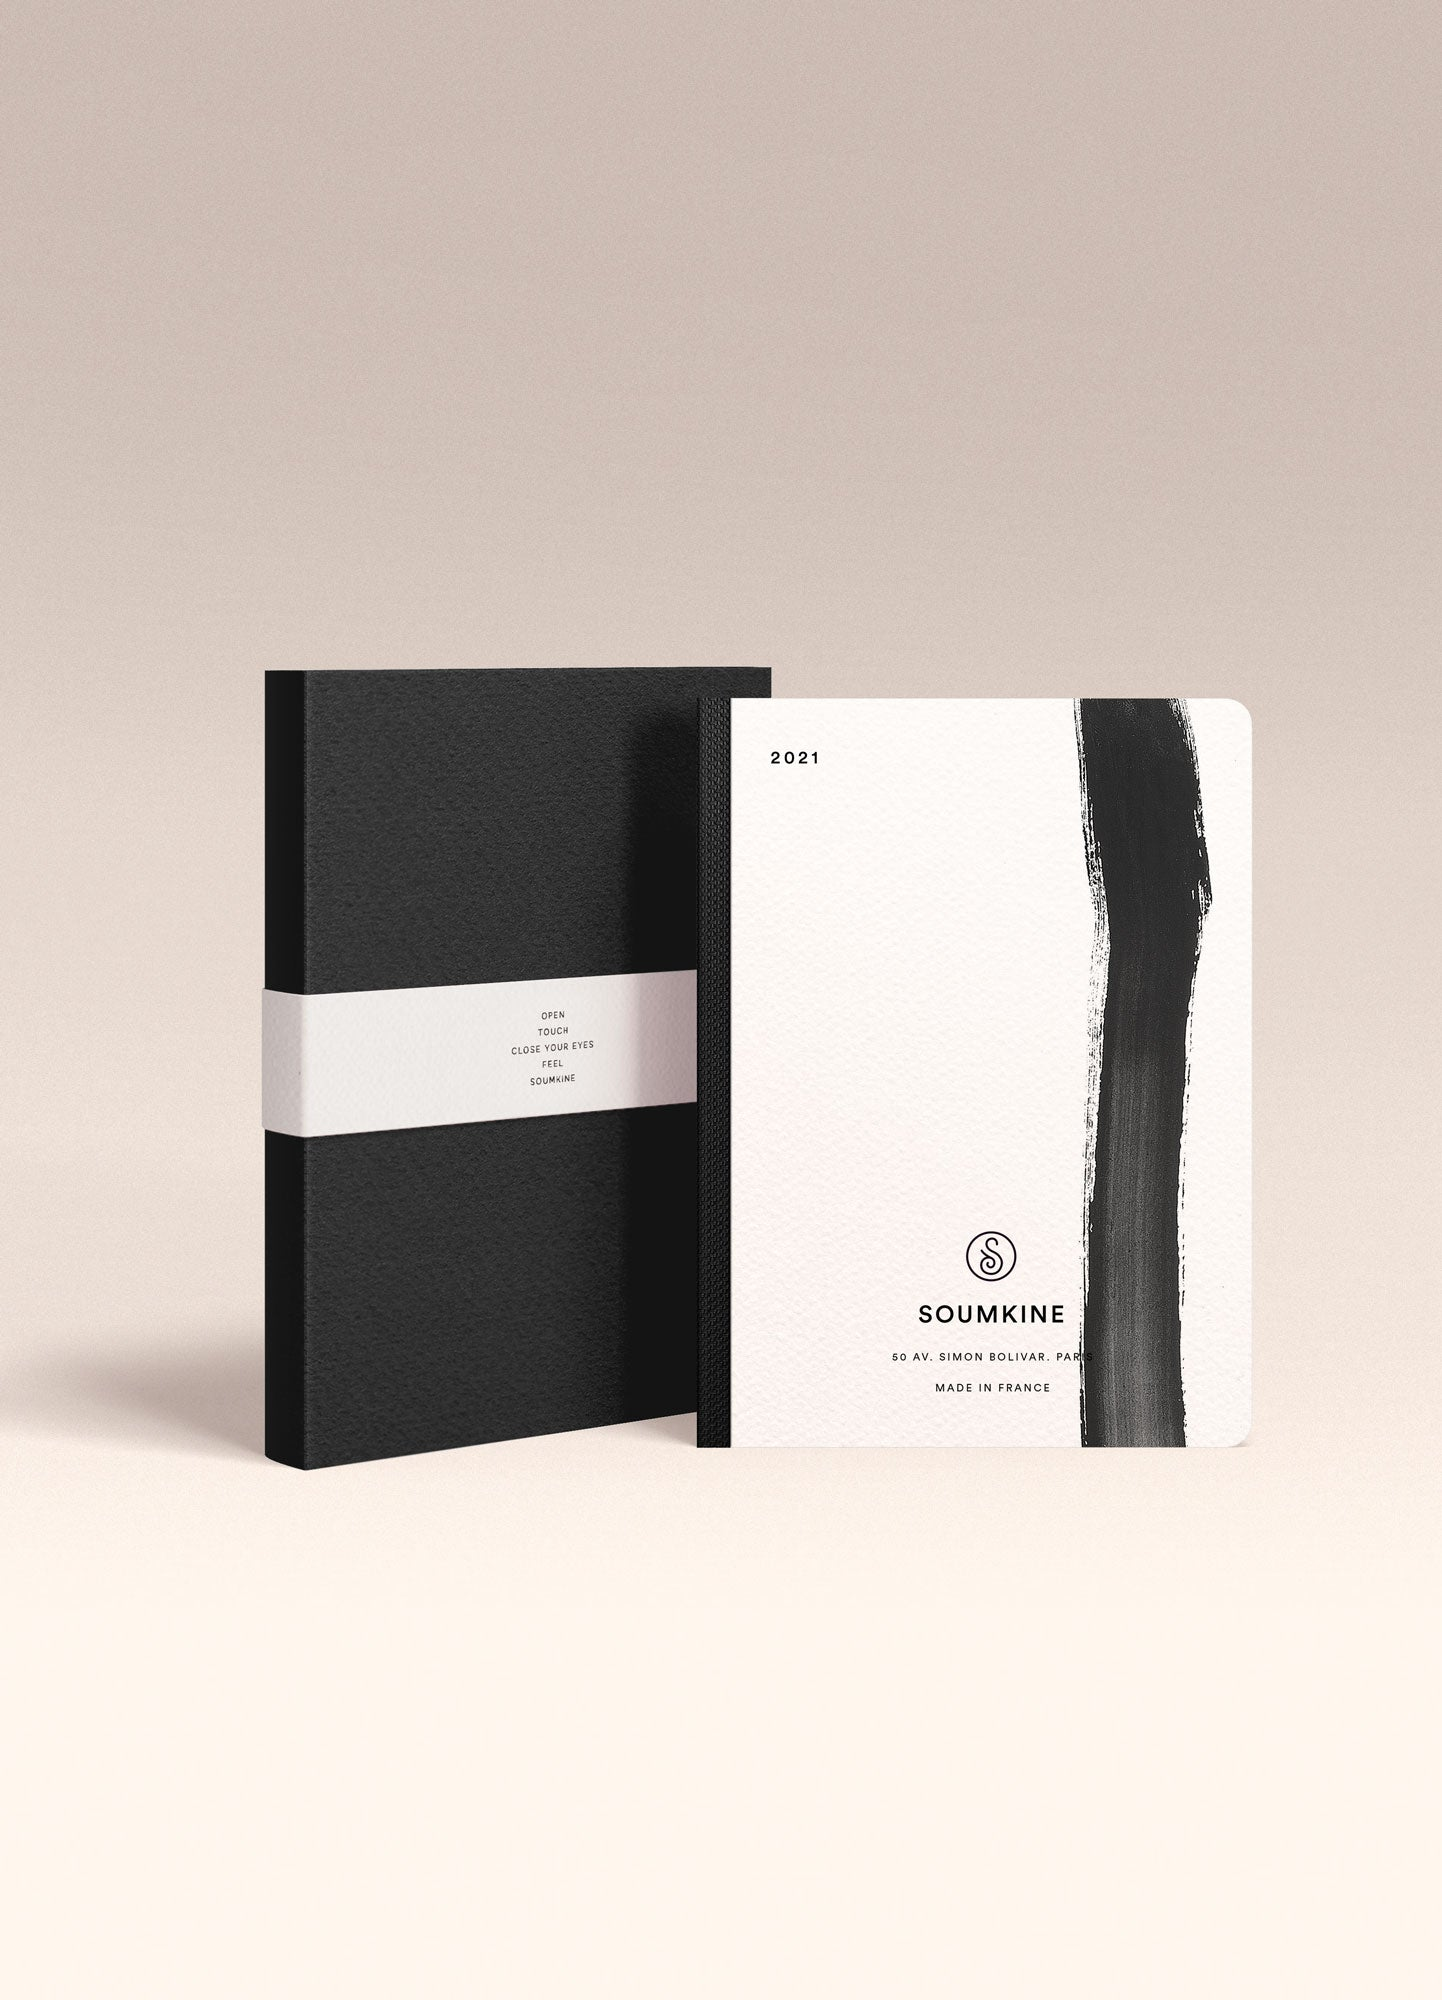 """Untitled 03"" by Anna Chask. 2021 Weekly planner B6 Size. 100% Cotton Paper"